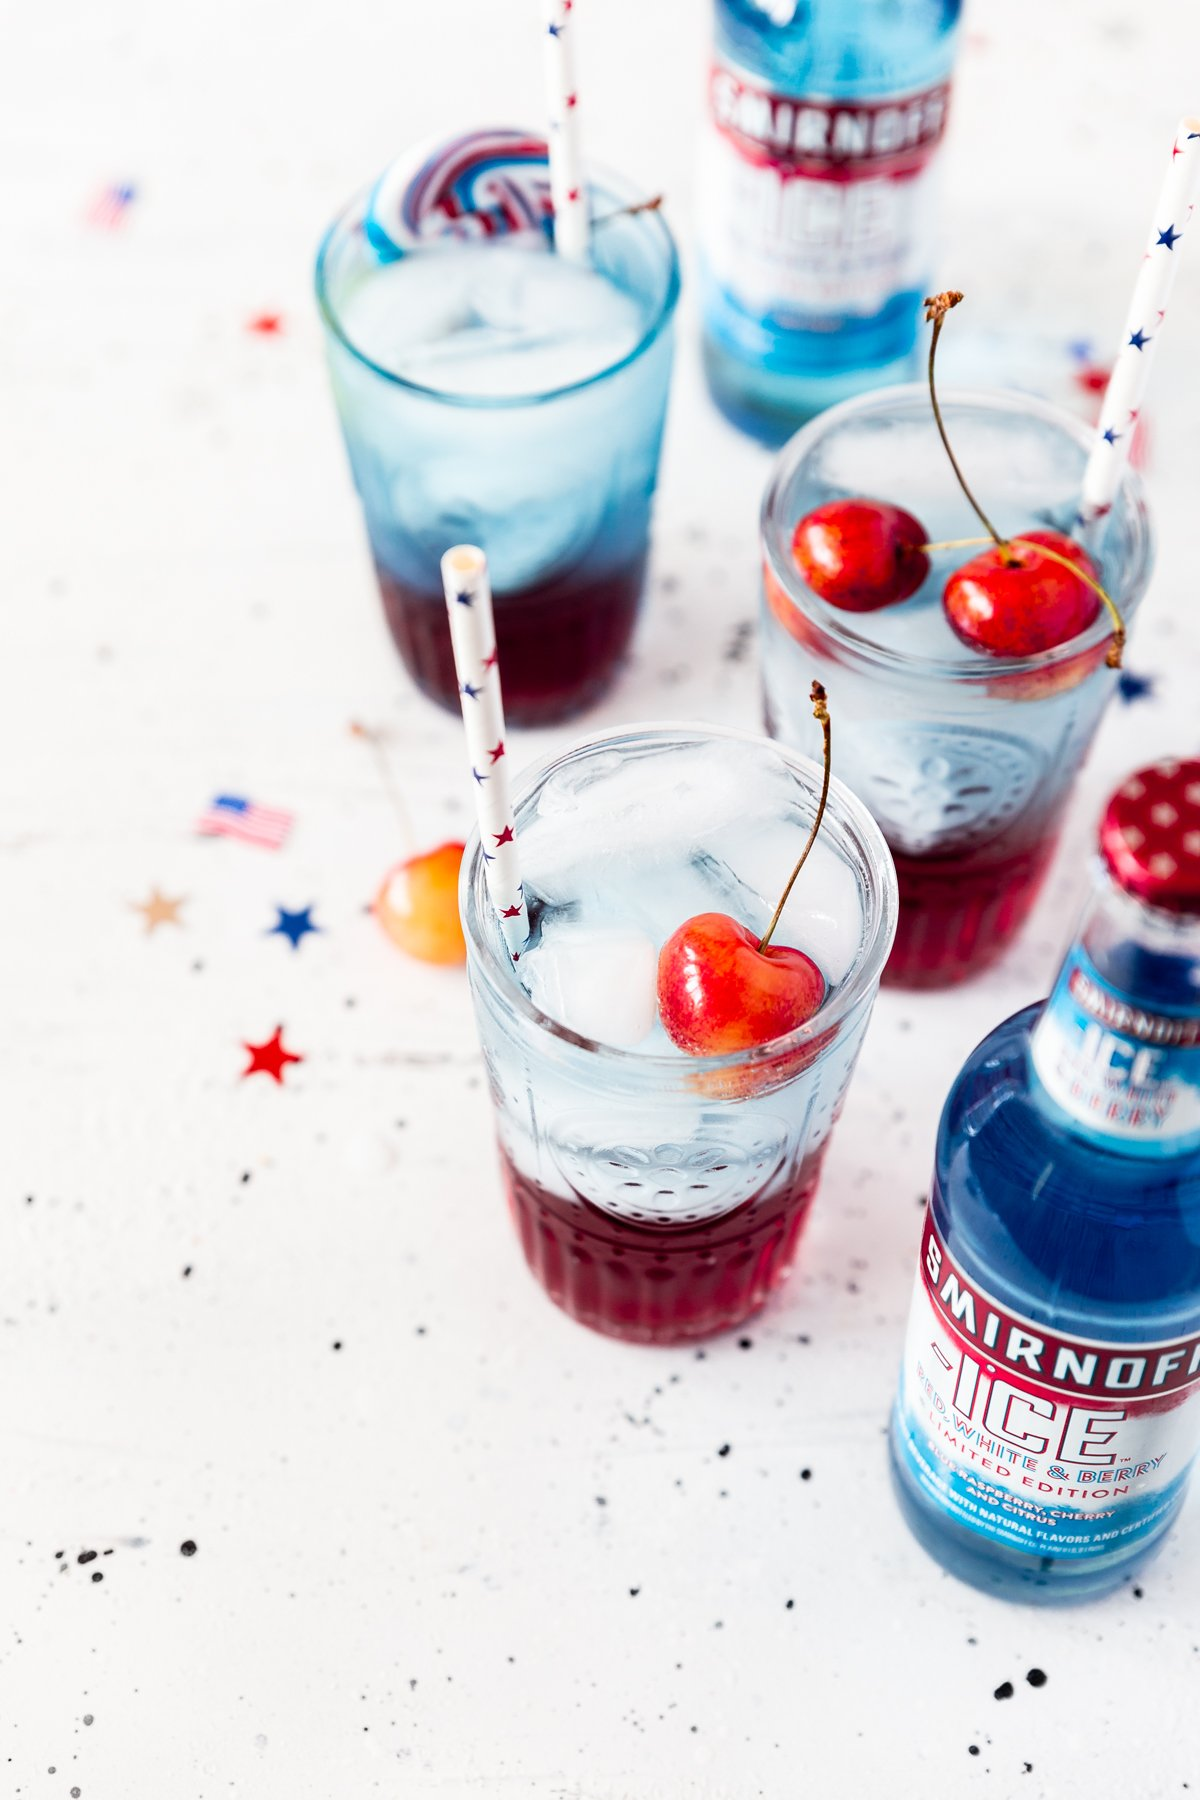 three glasses of cherries jubilee cocktail, red on bottom, blue on top, with fresh cherries, white paper straws with red and blue stars, 2 bottles of Smirnoff ICE red white and berry